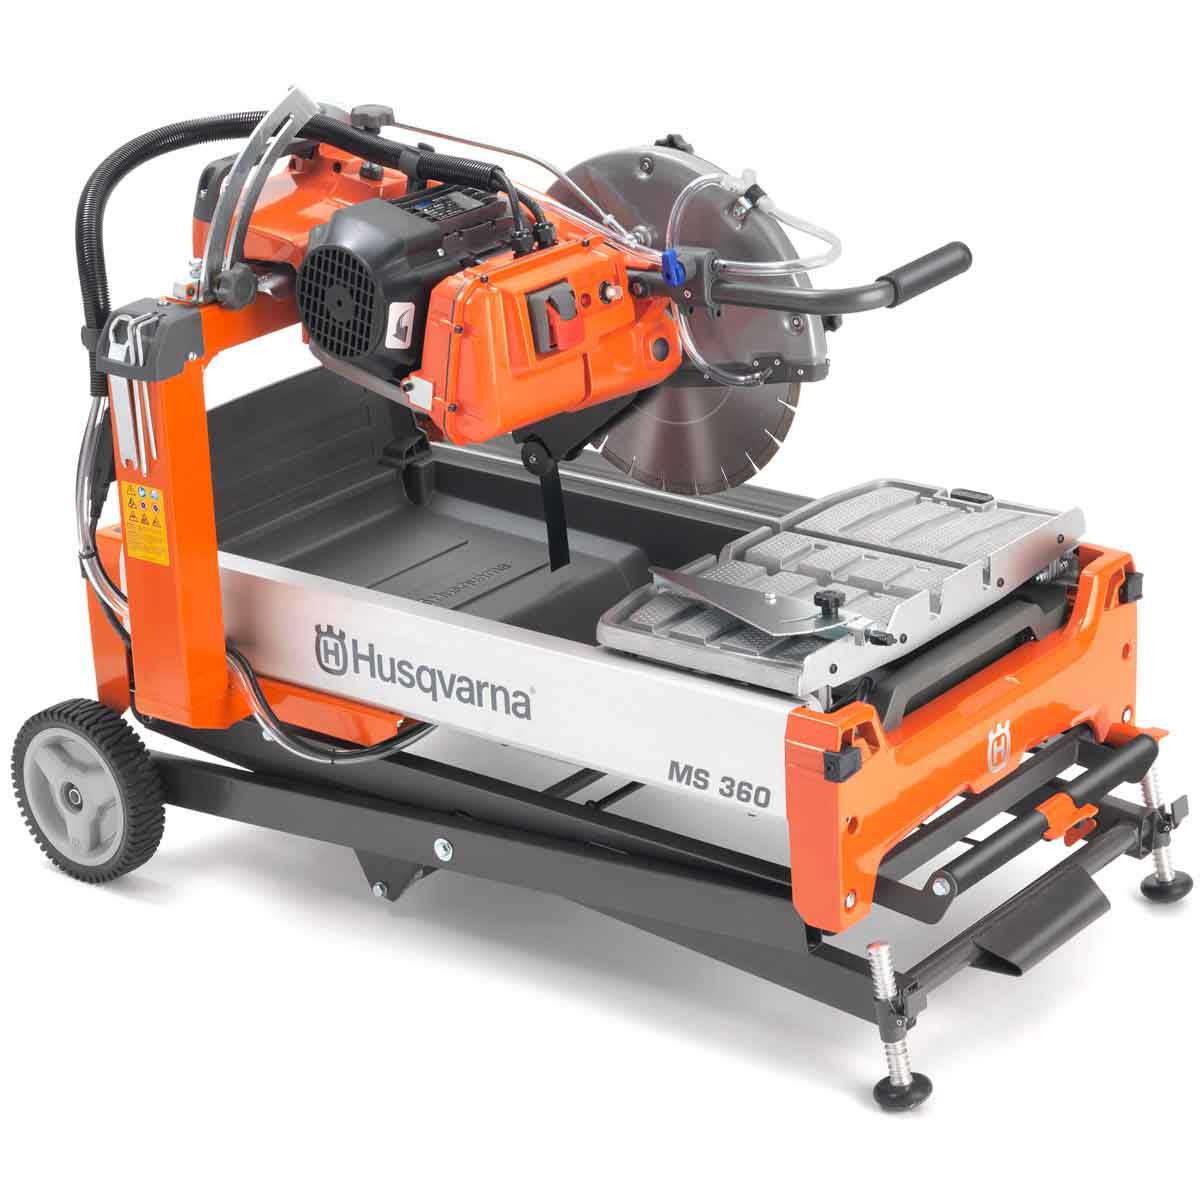 husqvarna ms 360 14in masonry saw with folding stand sold separately